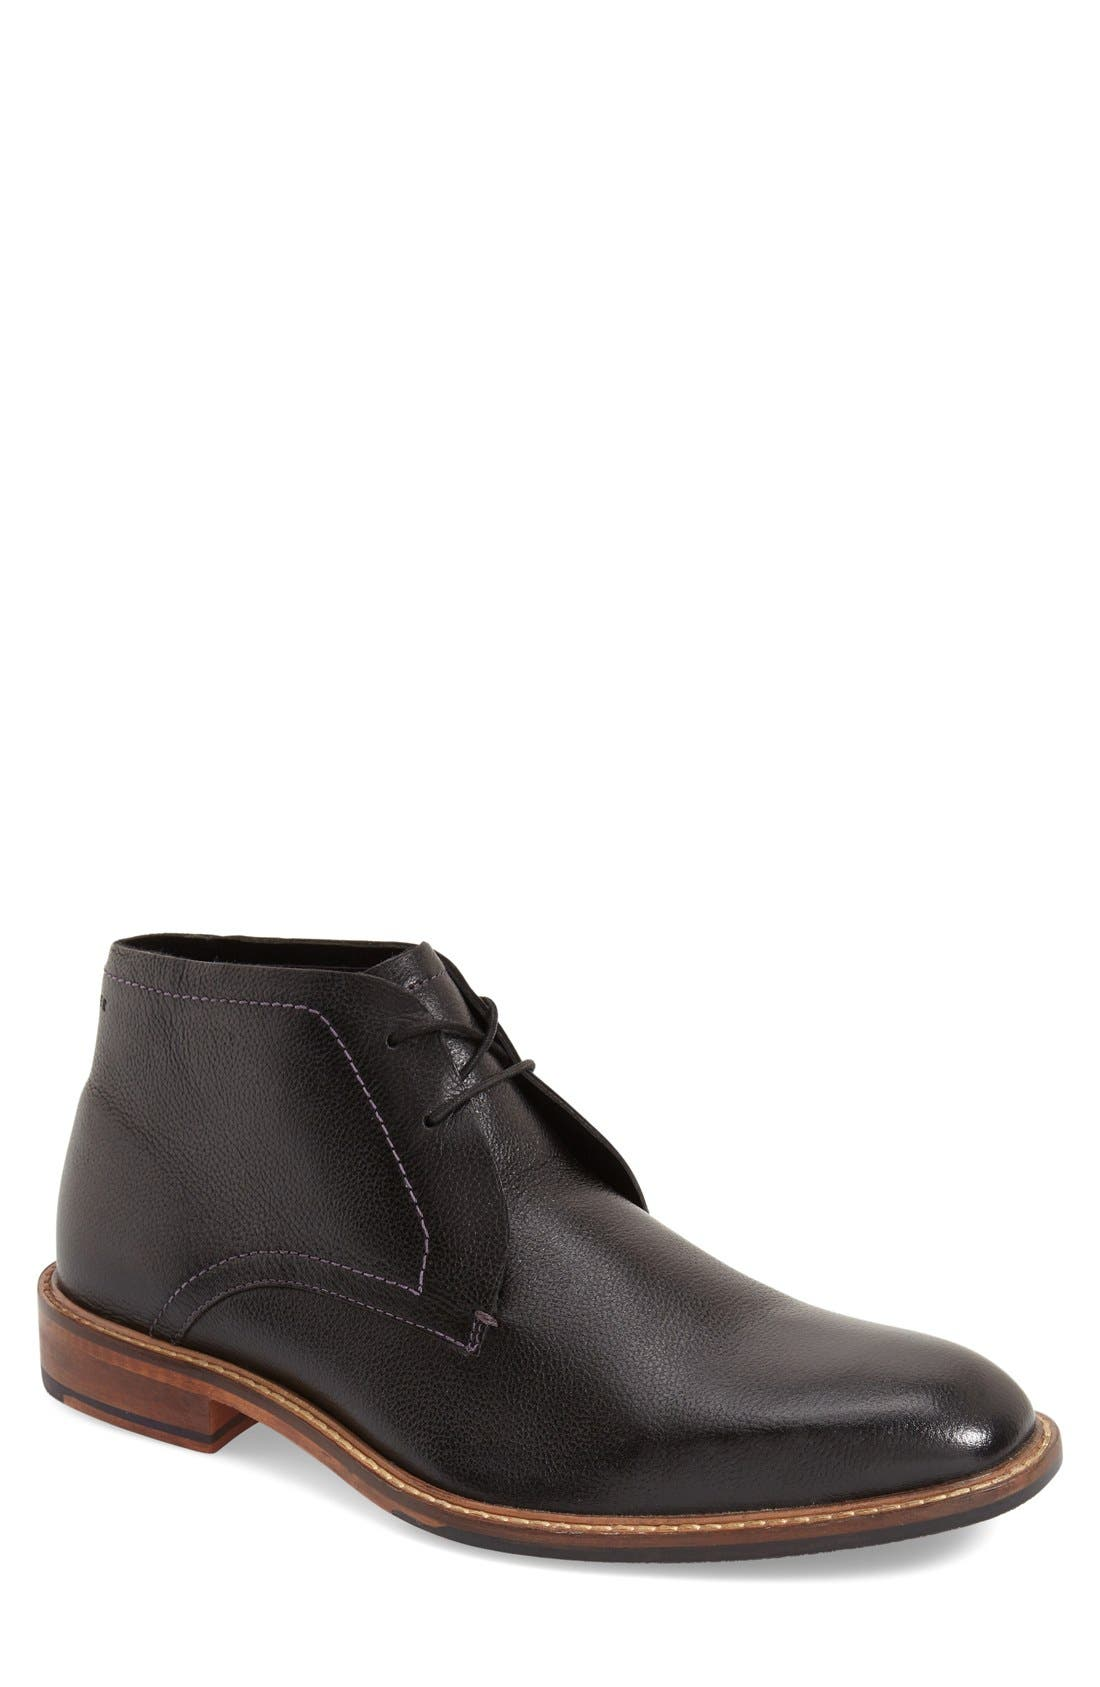 'Torsdi 4' Chukka Boot,                             Main thumbnail 2, color,